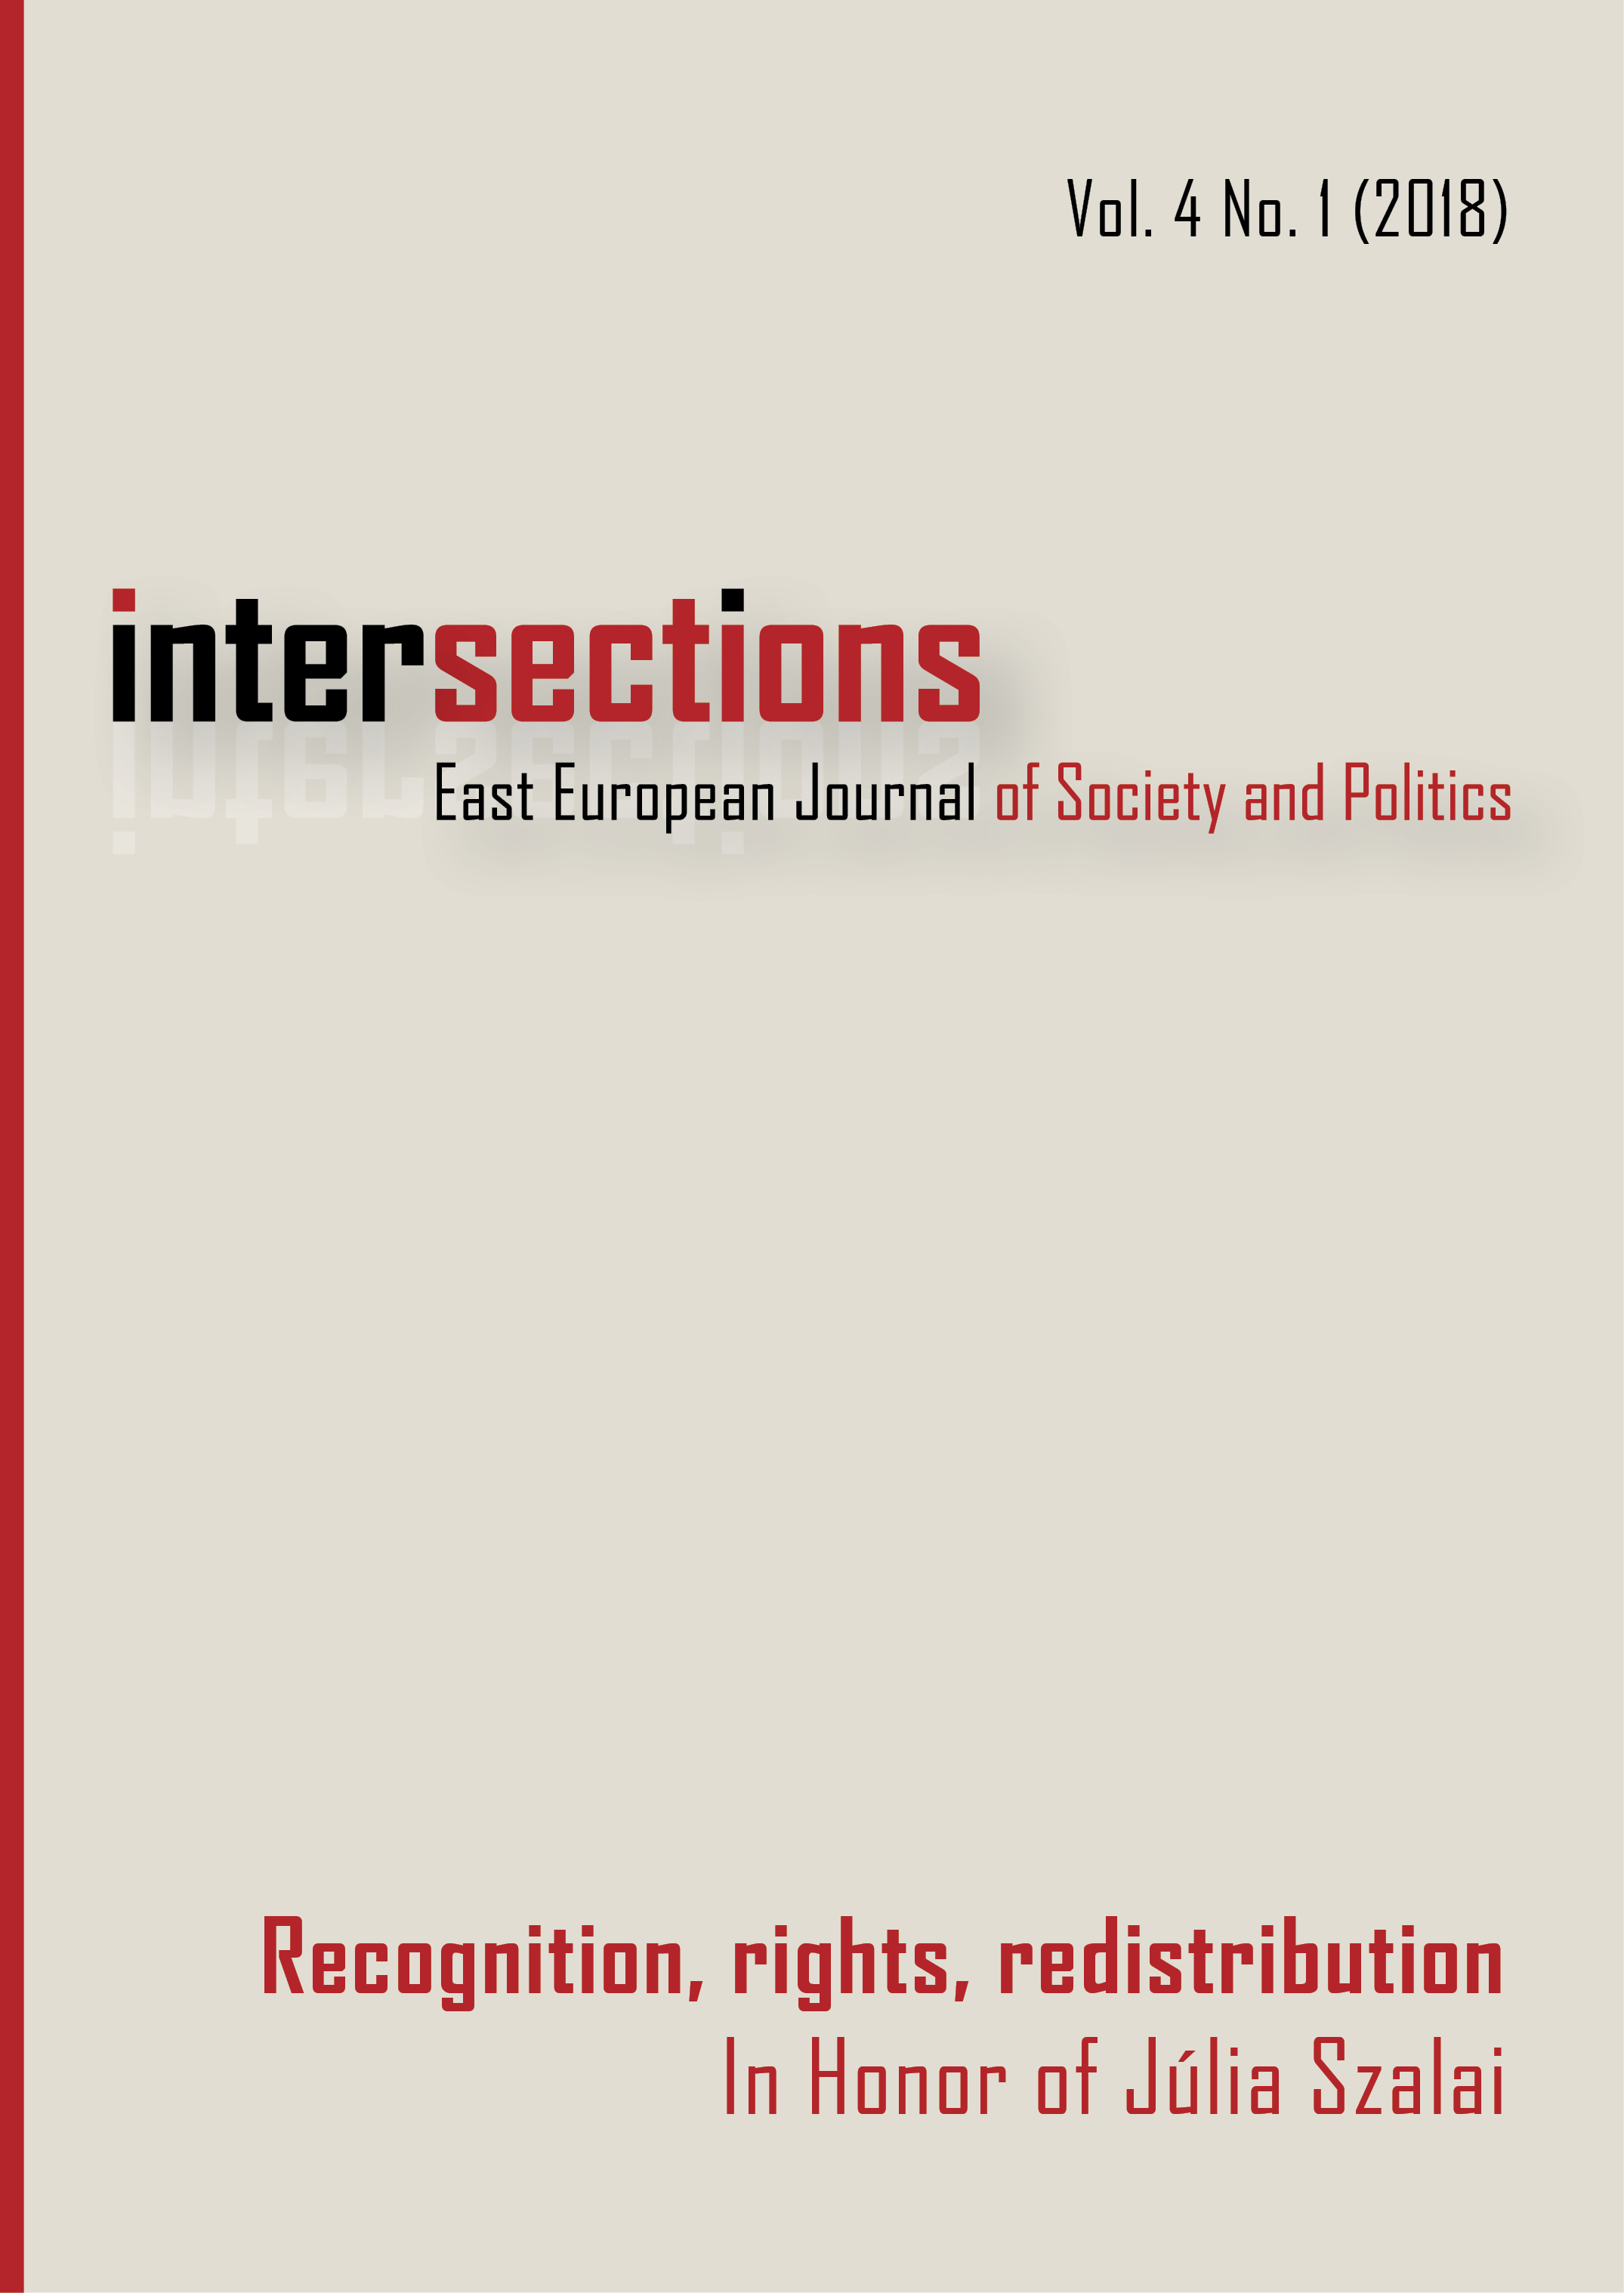 View Vol. 4 No. 1 (2018): Recognition, Rights, Redistribution. In Honor of Júlia Szalai